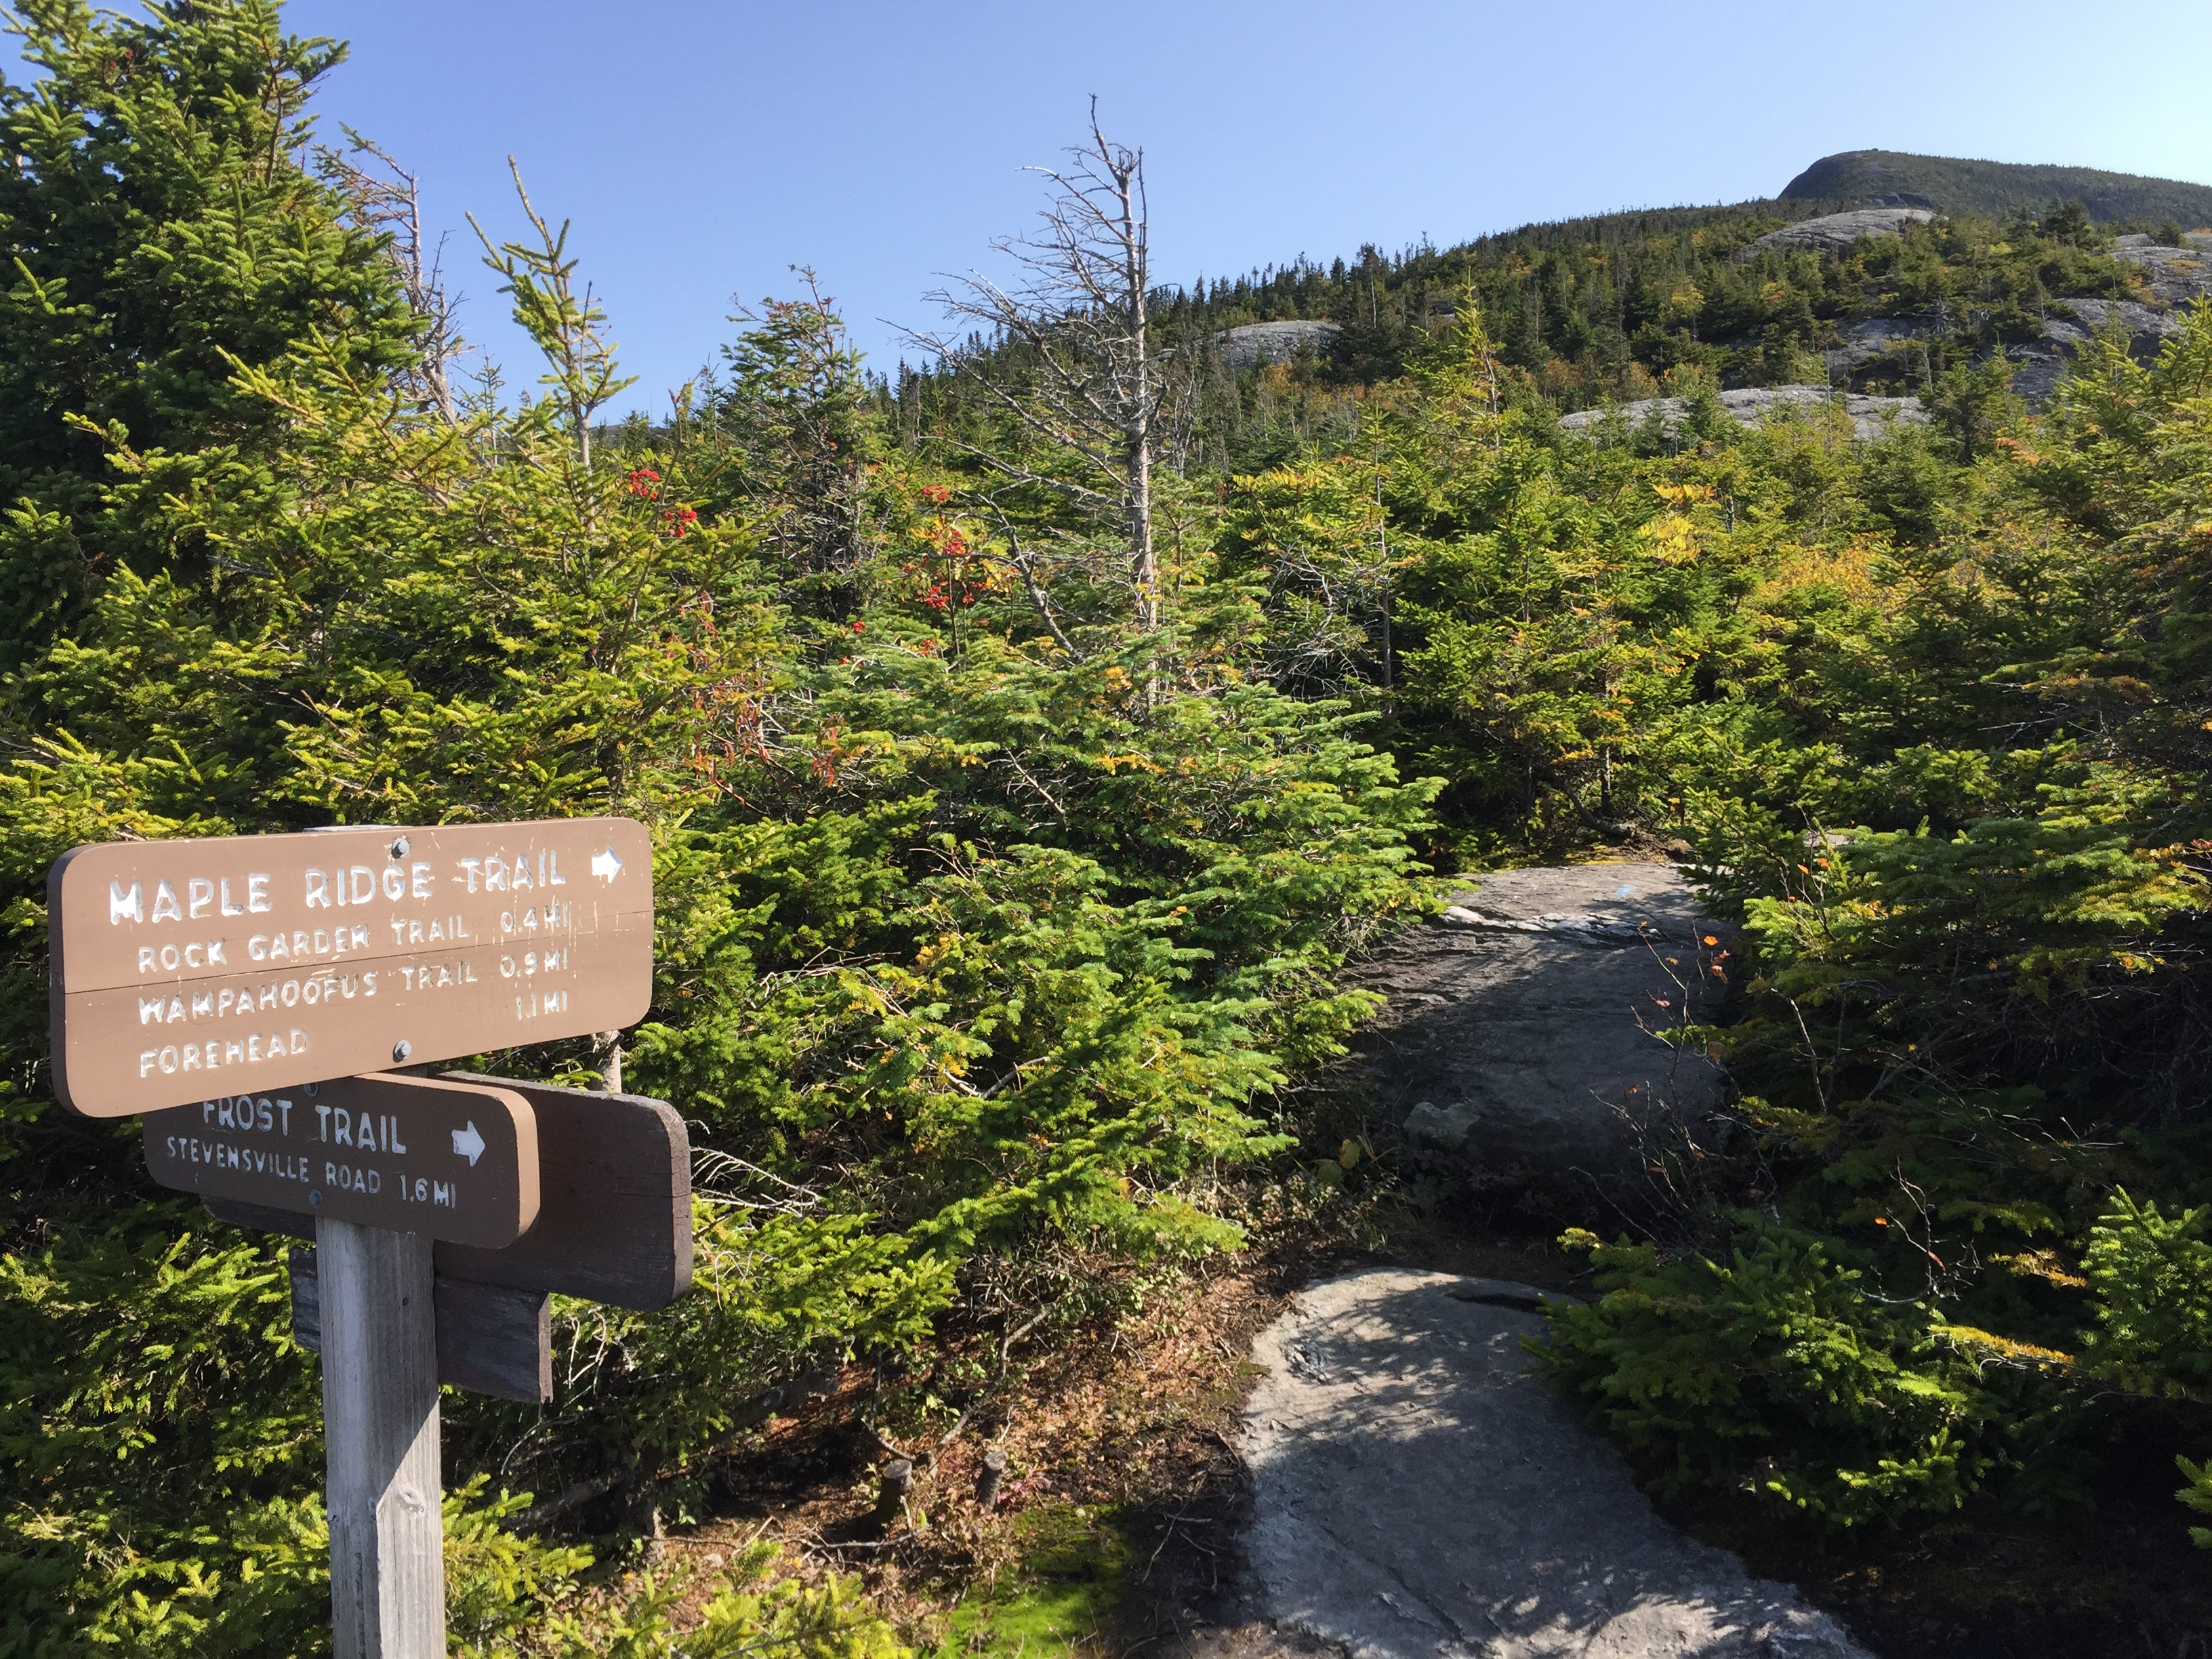 File:2017-09-11 10 27 43 View east along the Maple Ridge Trail at the junction with the Frost Trail on the western slopes of Mount Mansfield within Mount Mansfield State Forest in Underhill, Chittenden County, Vermont.jpg